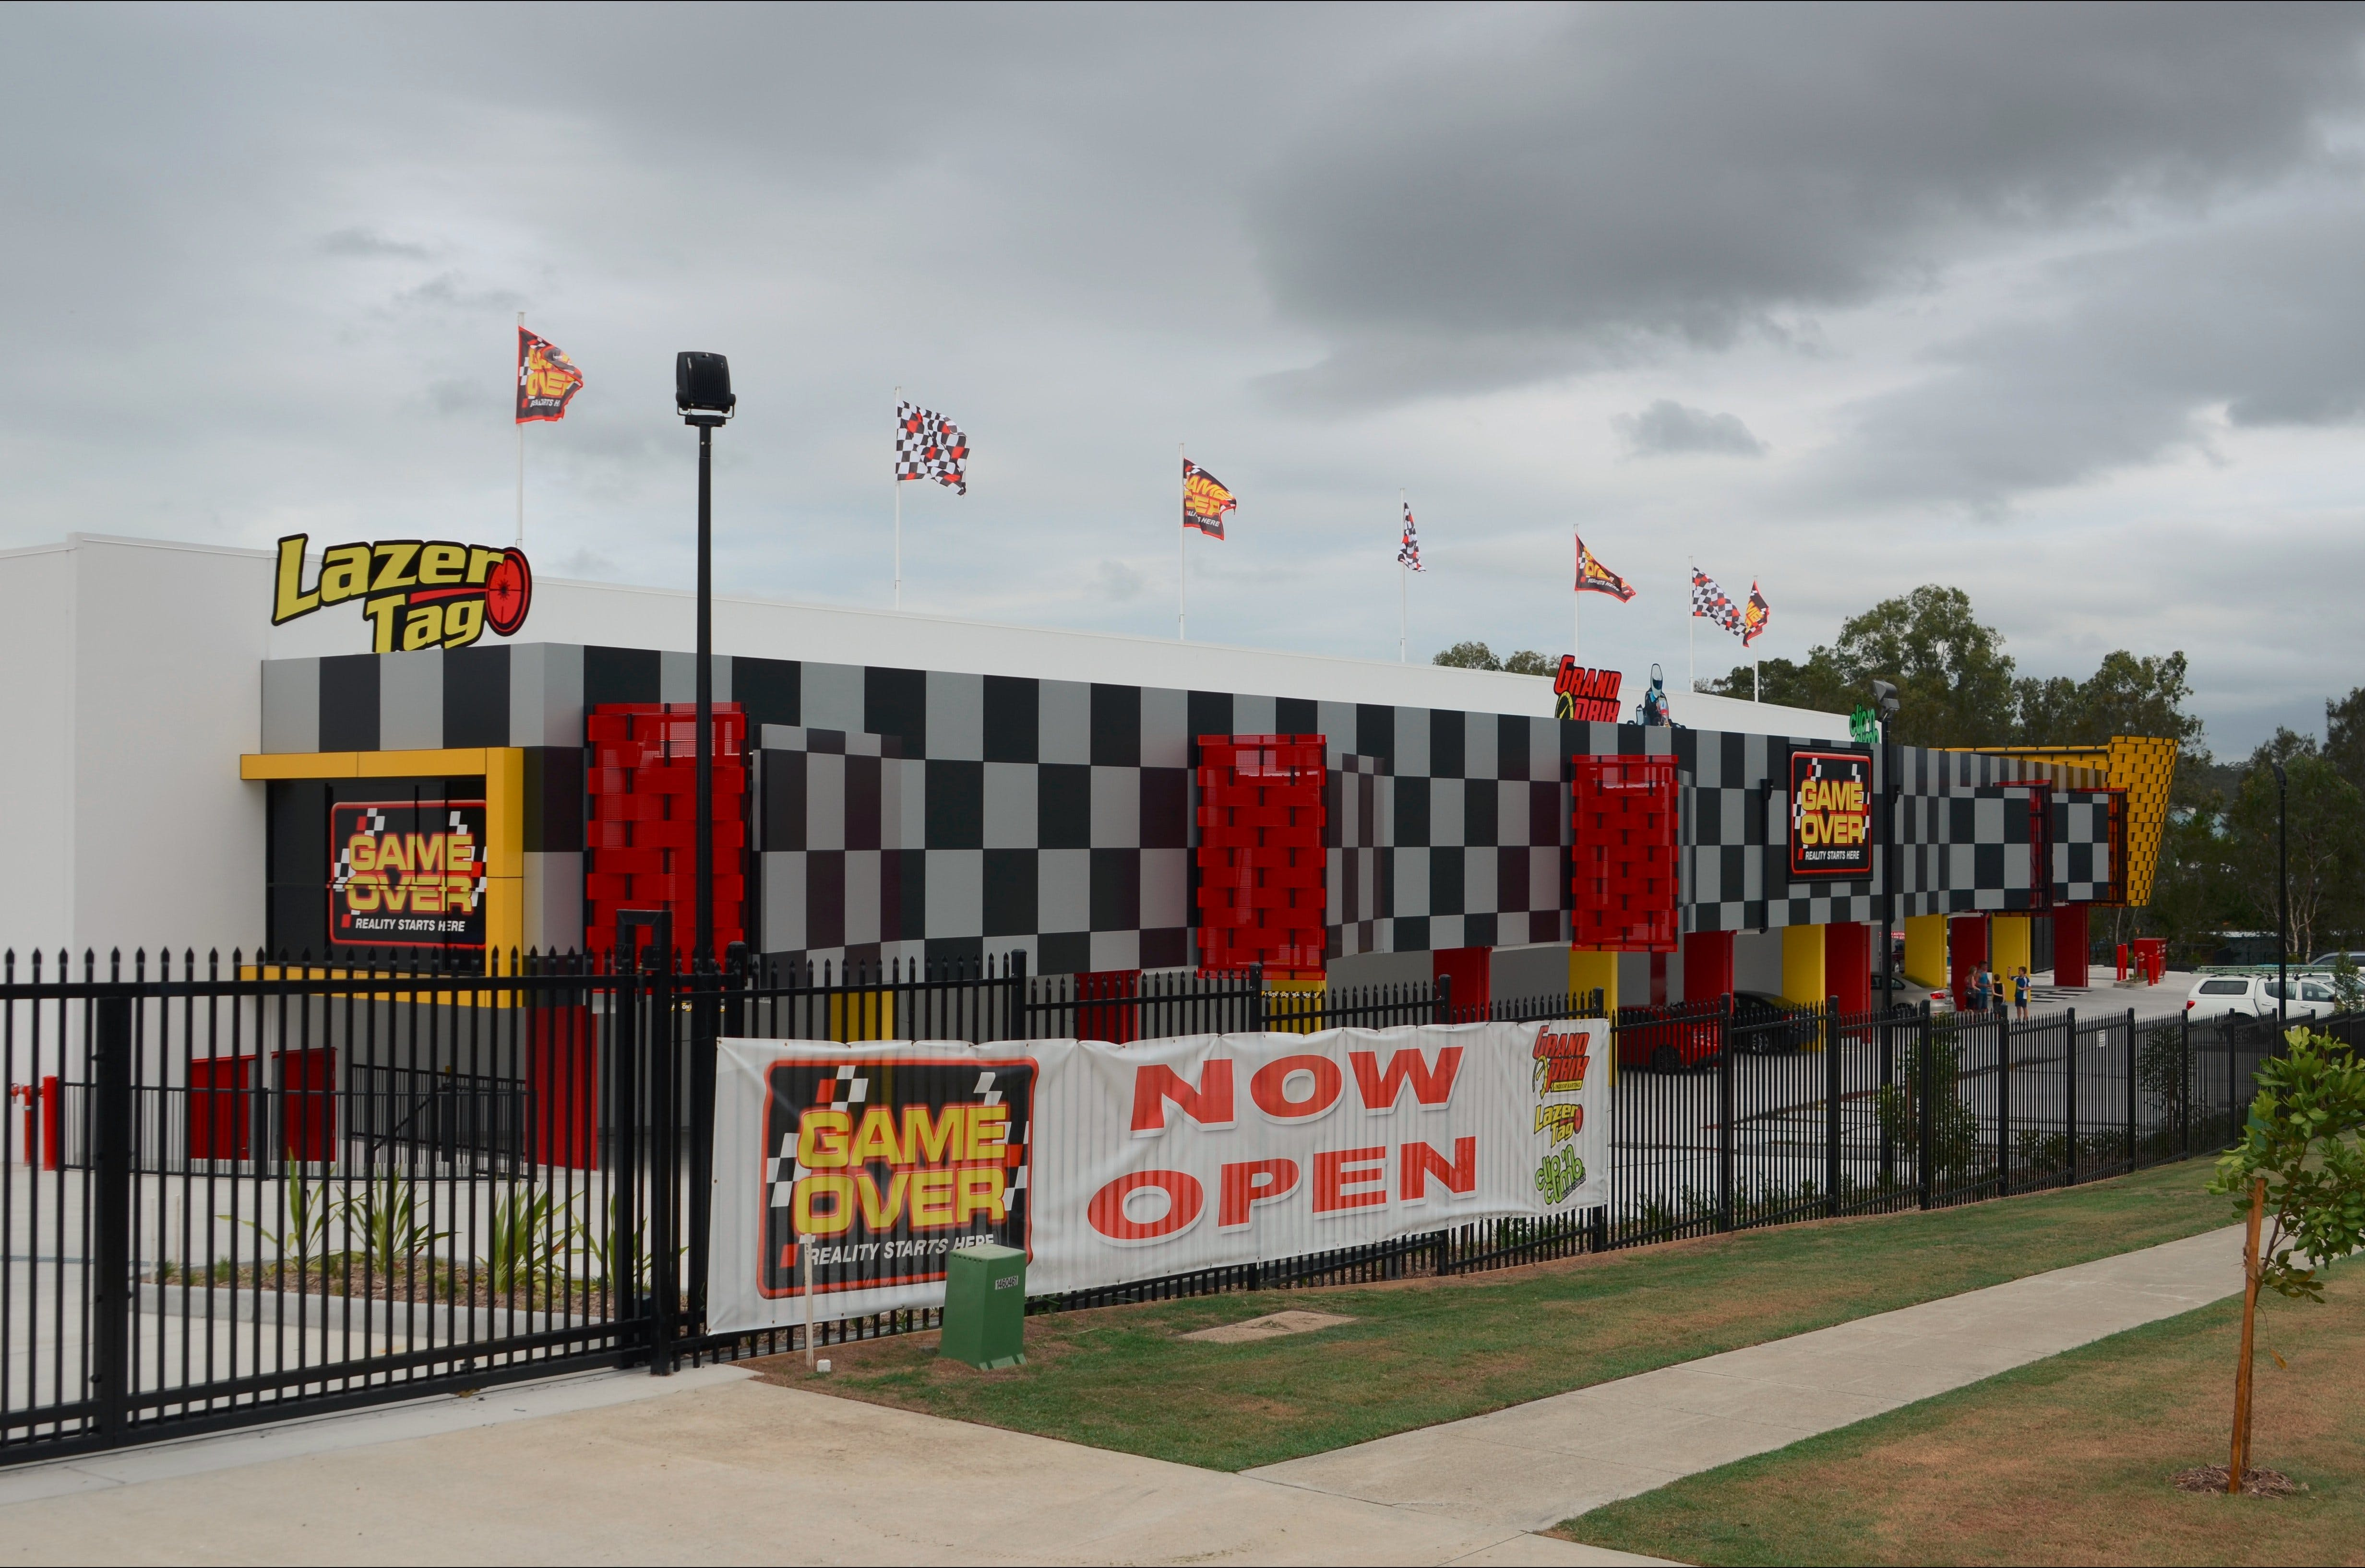 Game Over Indoor Go Karting Adventure Climbing Walls and Lazer Tag Centre - Find Attractions